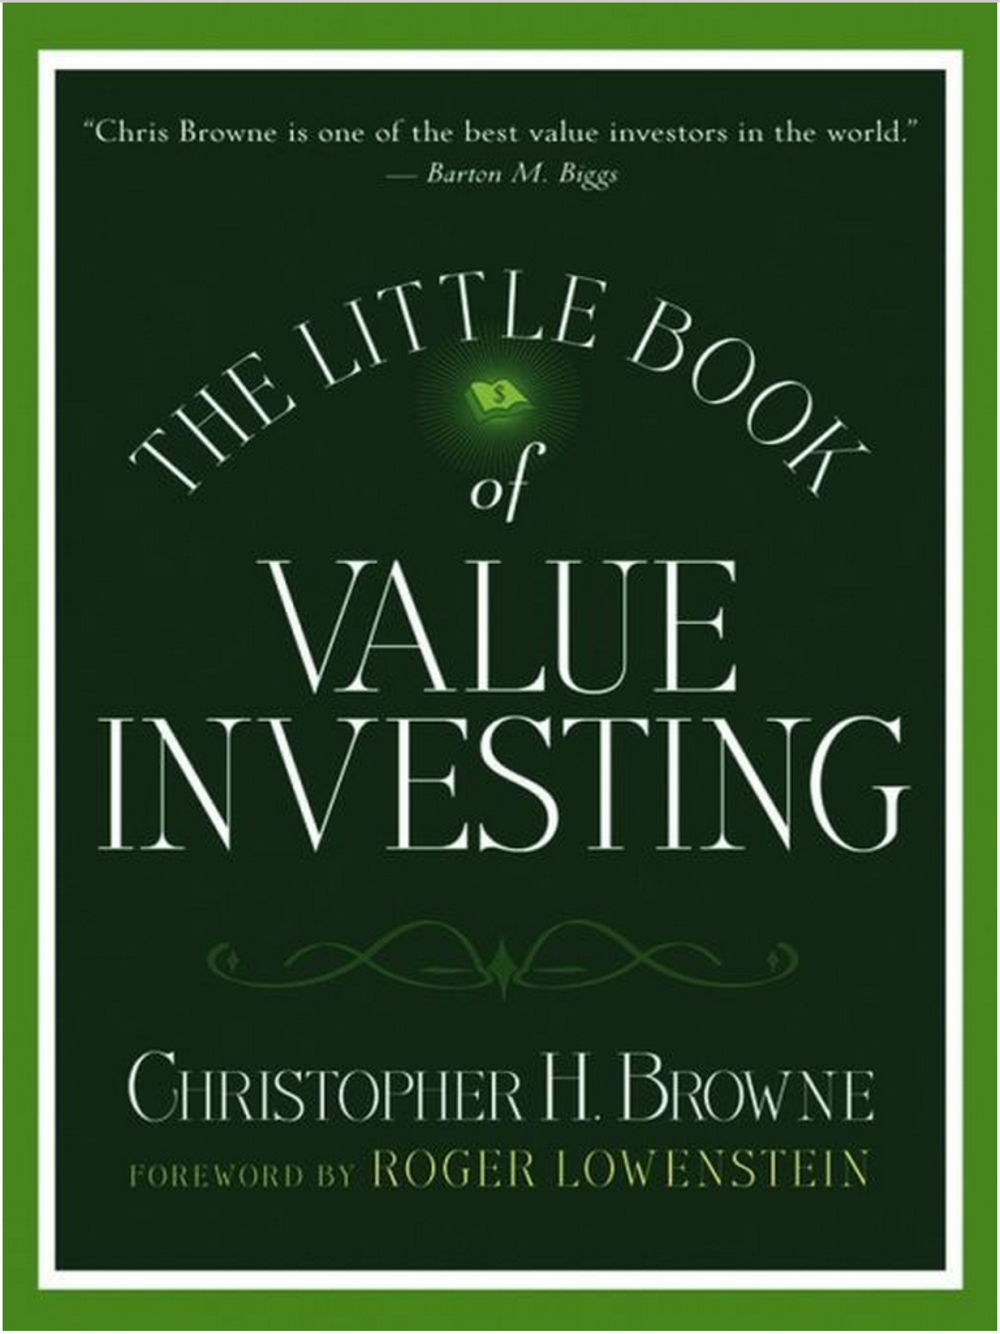 The Little Book of Value Investing. Christopher H. Browne 2007